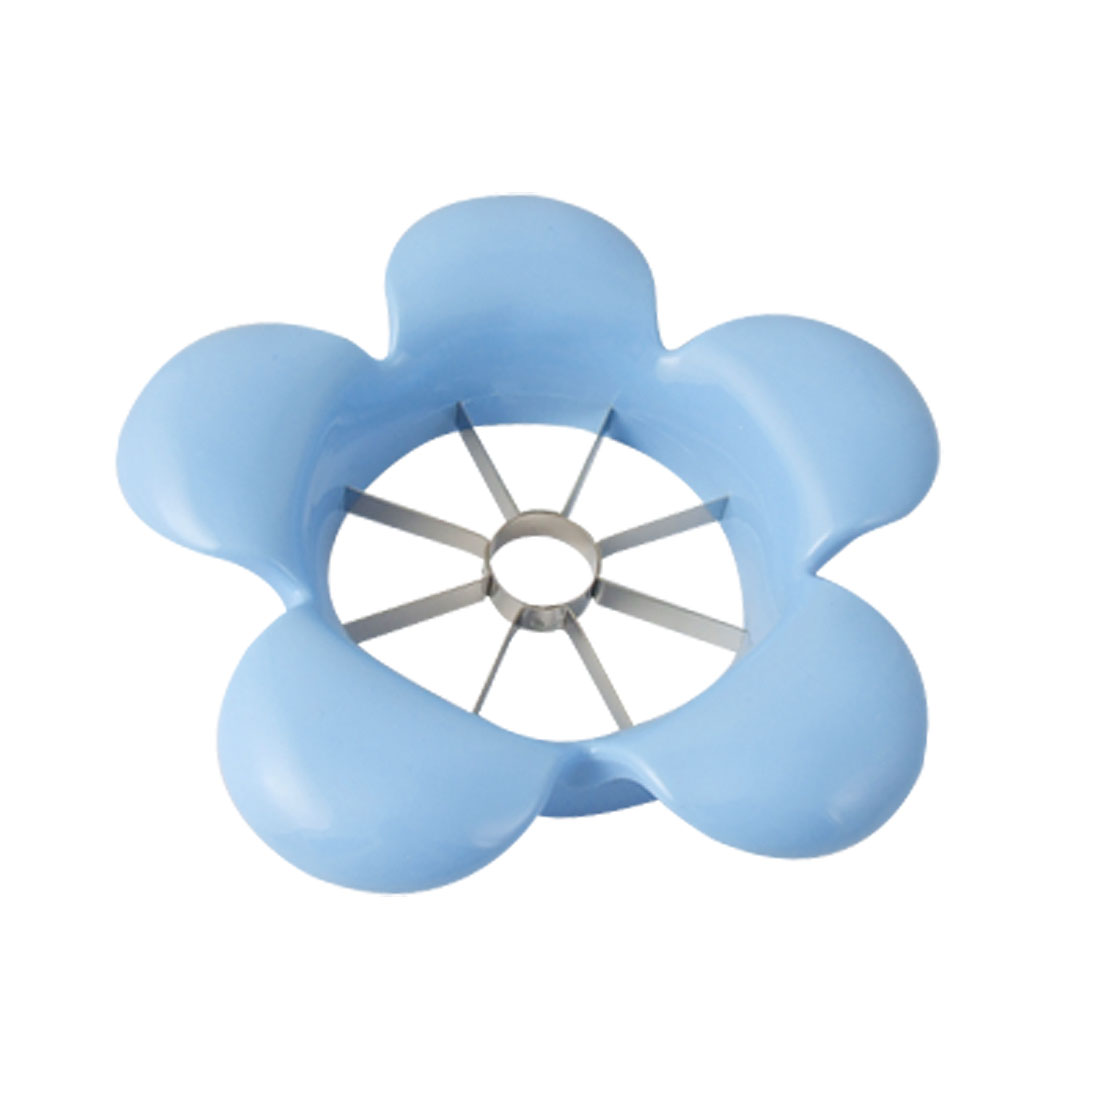 Stainless Steel Blue Flower Design Apple Slicer